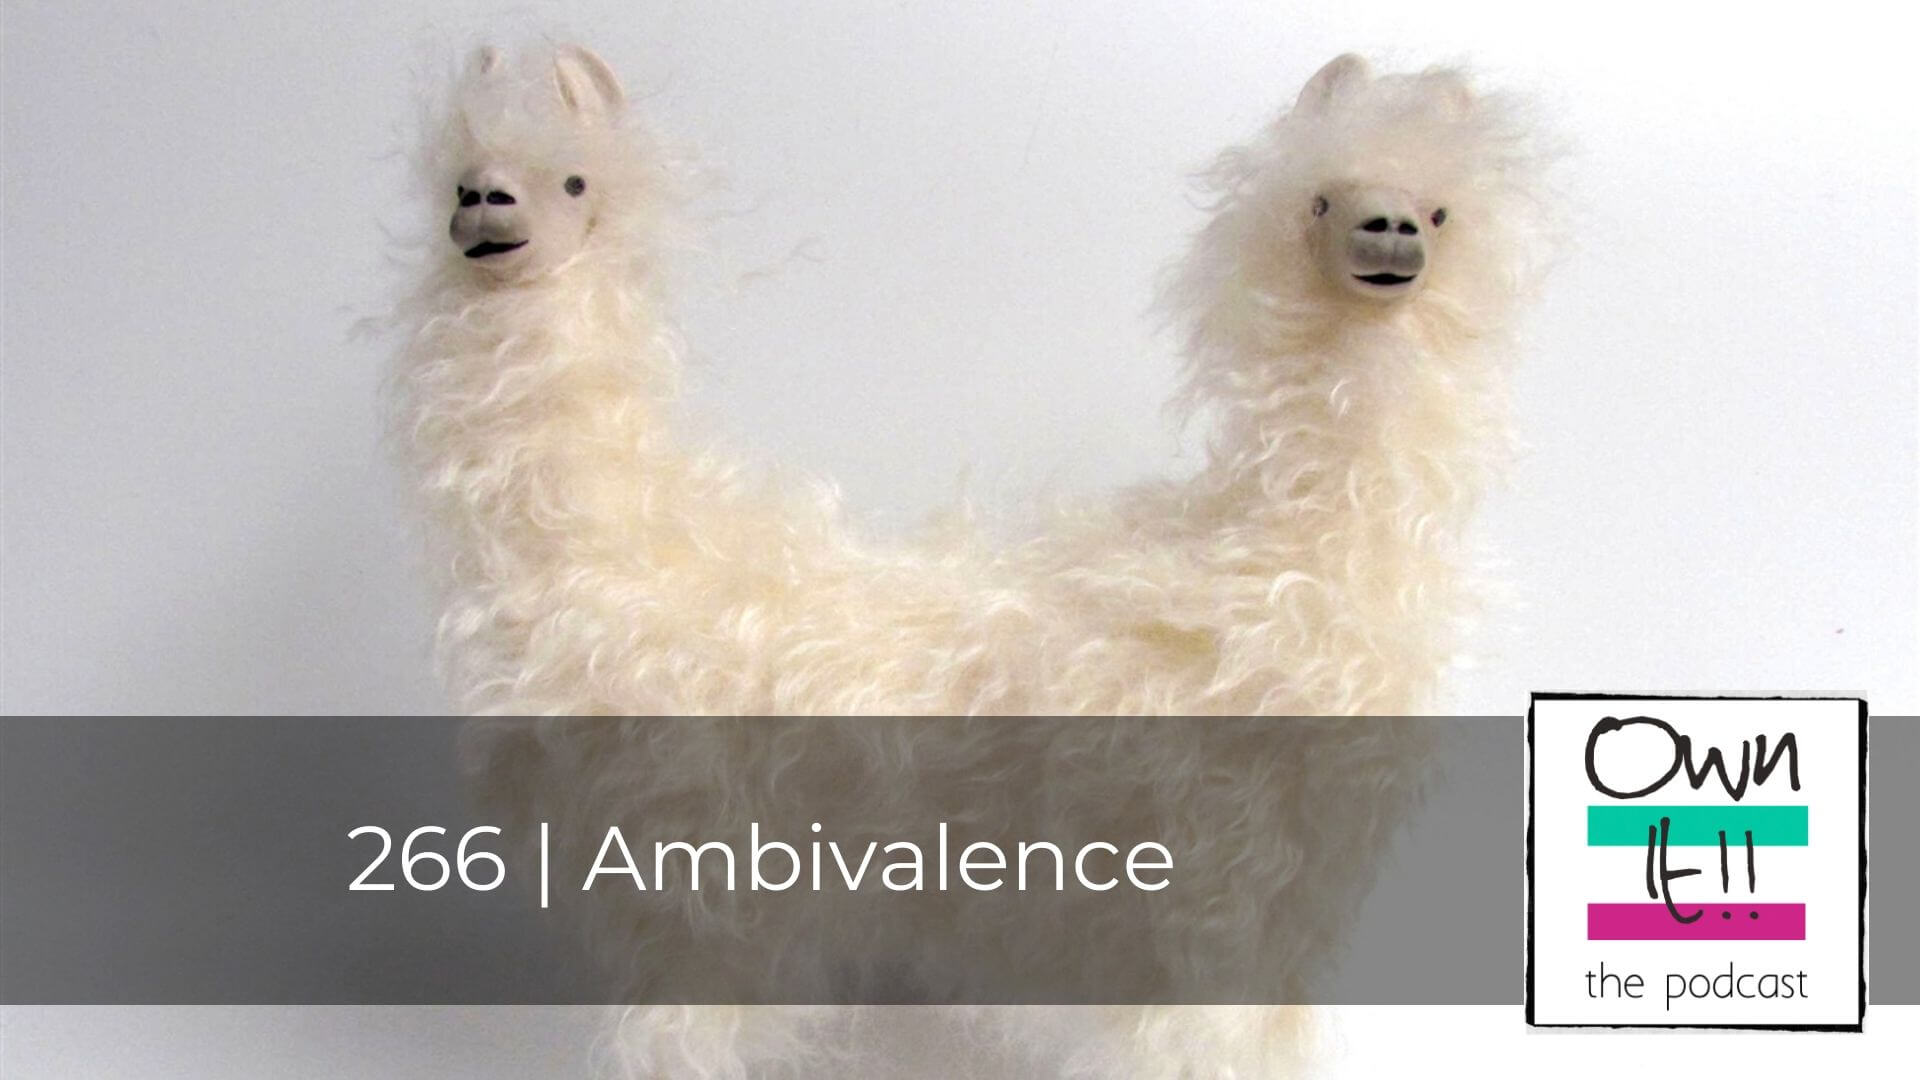 Own It! 266 | Ambivalence